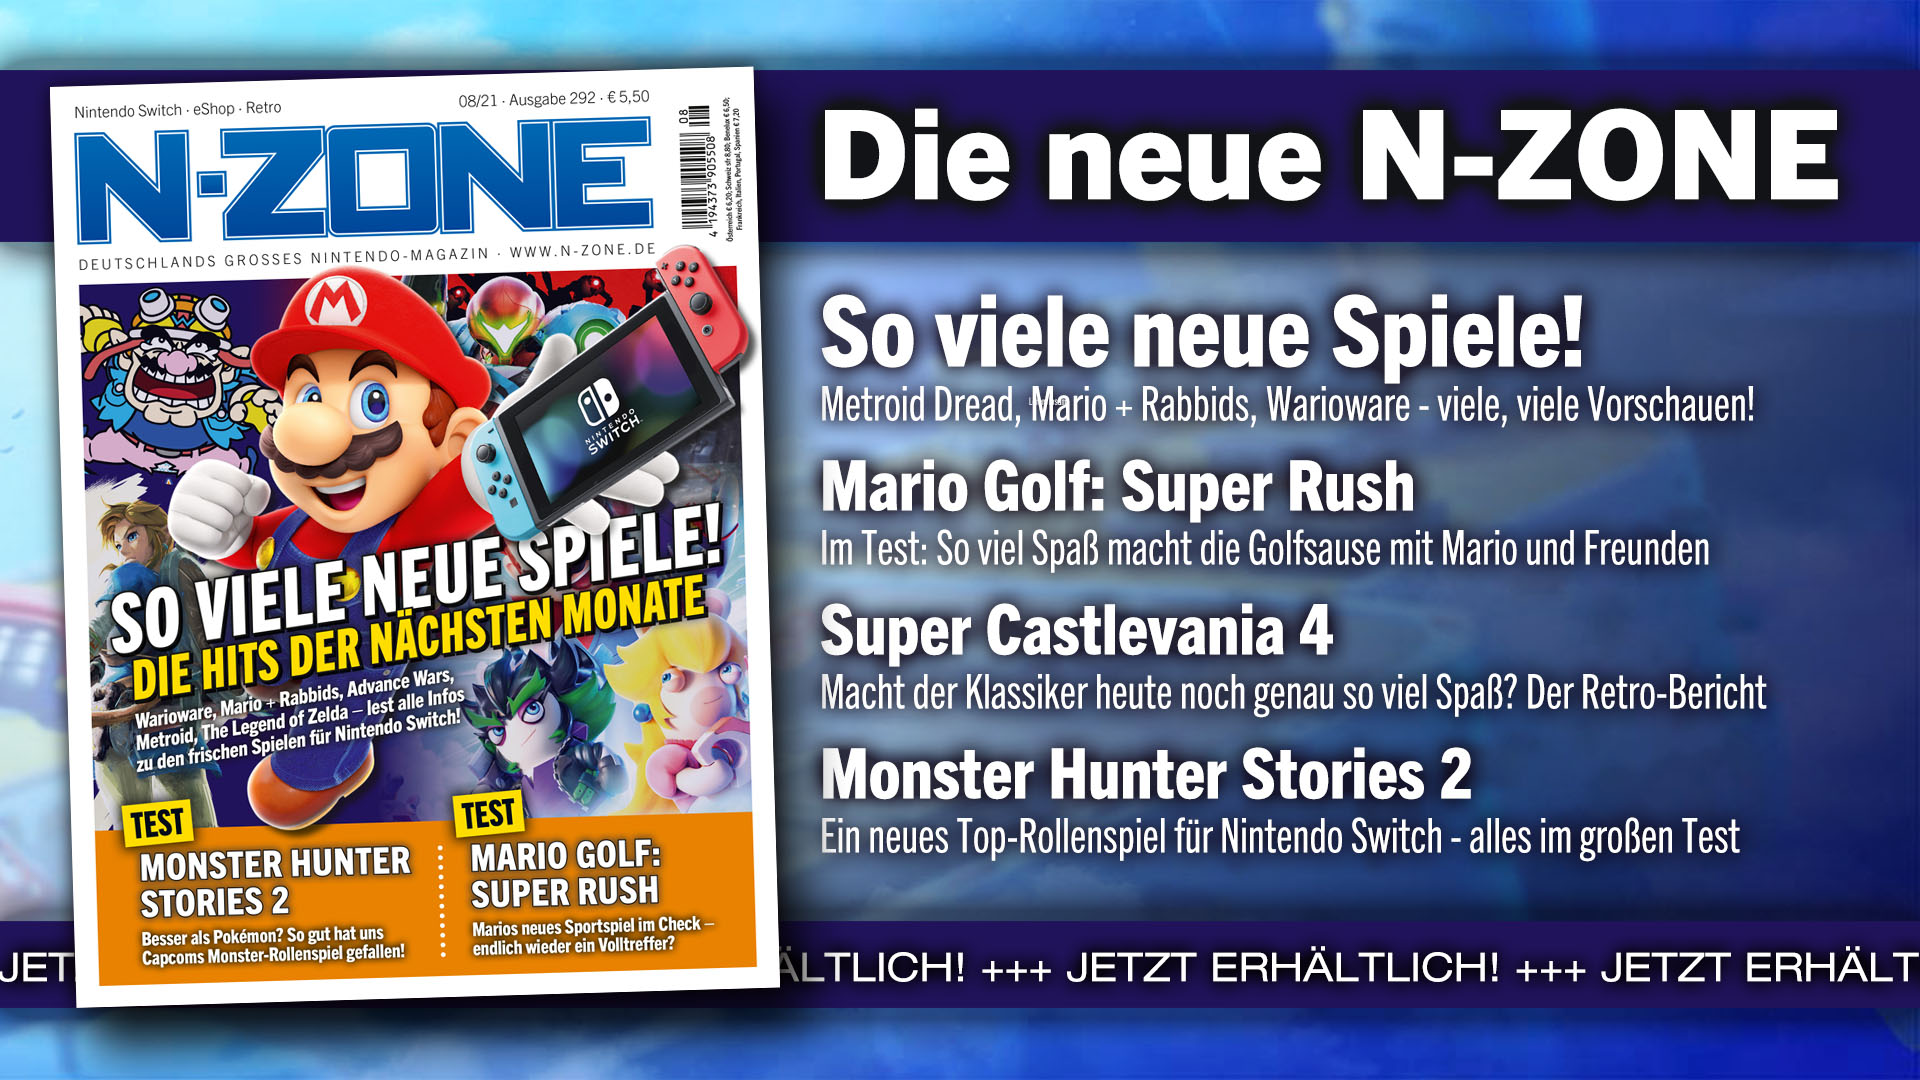 N-ZONE 08/21: Breath of the Wild 2, Mario Golf and much more